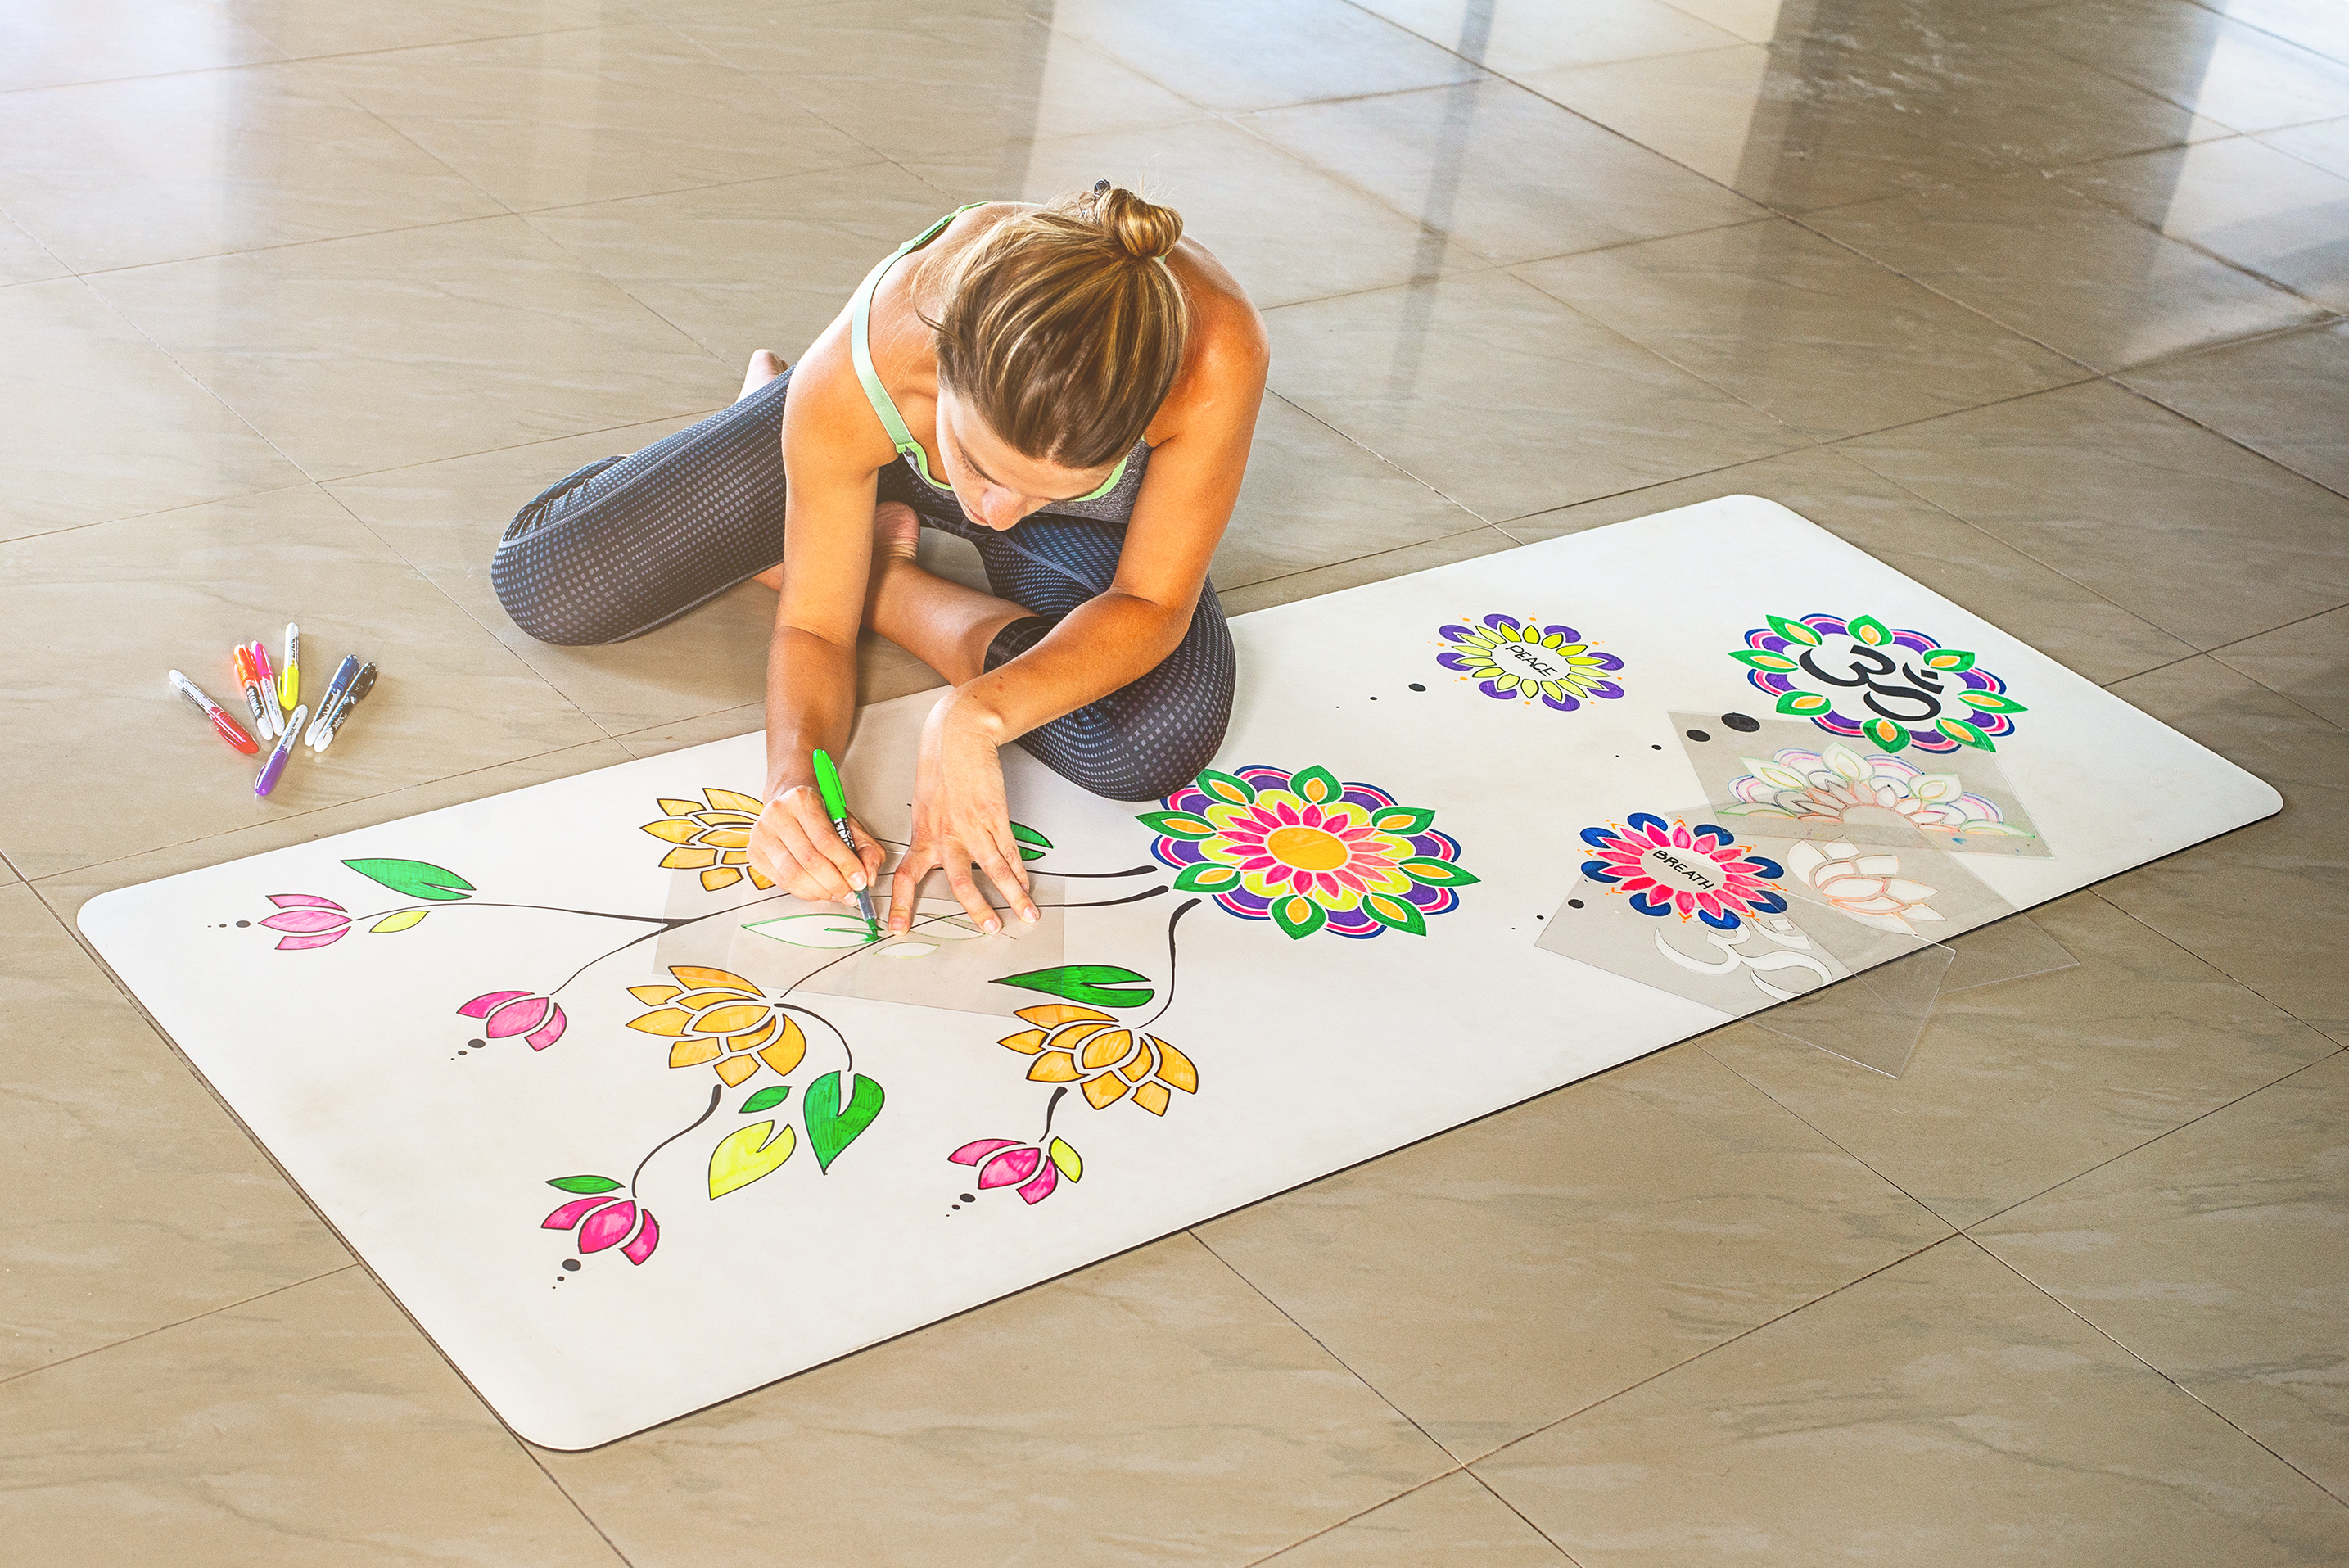 Drawing on the DIYogi yoga mat using markers and stencils